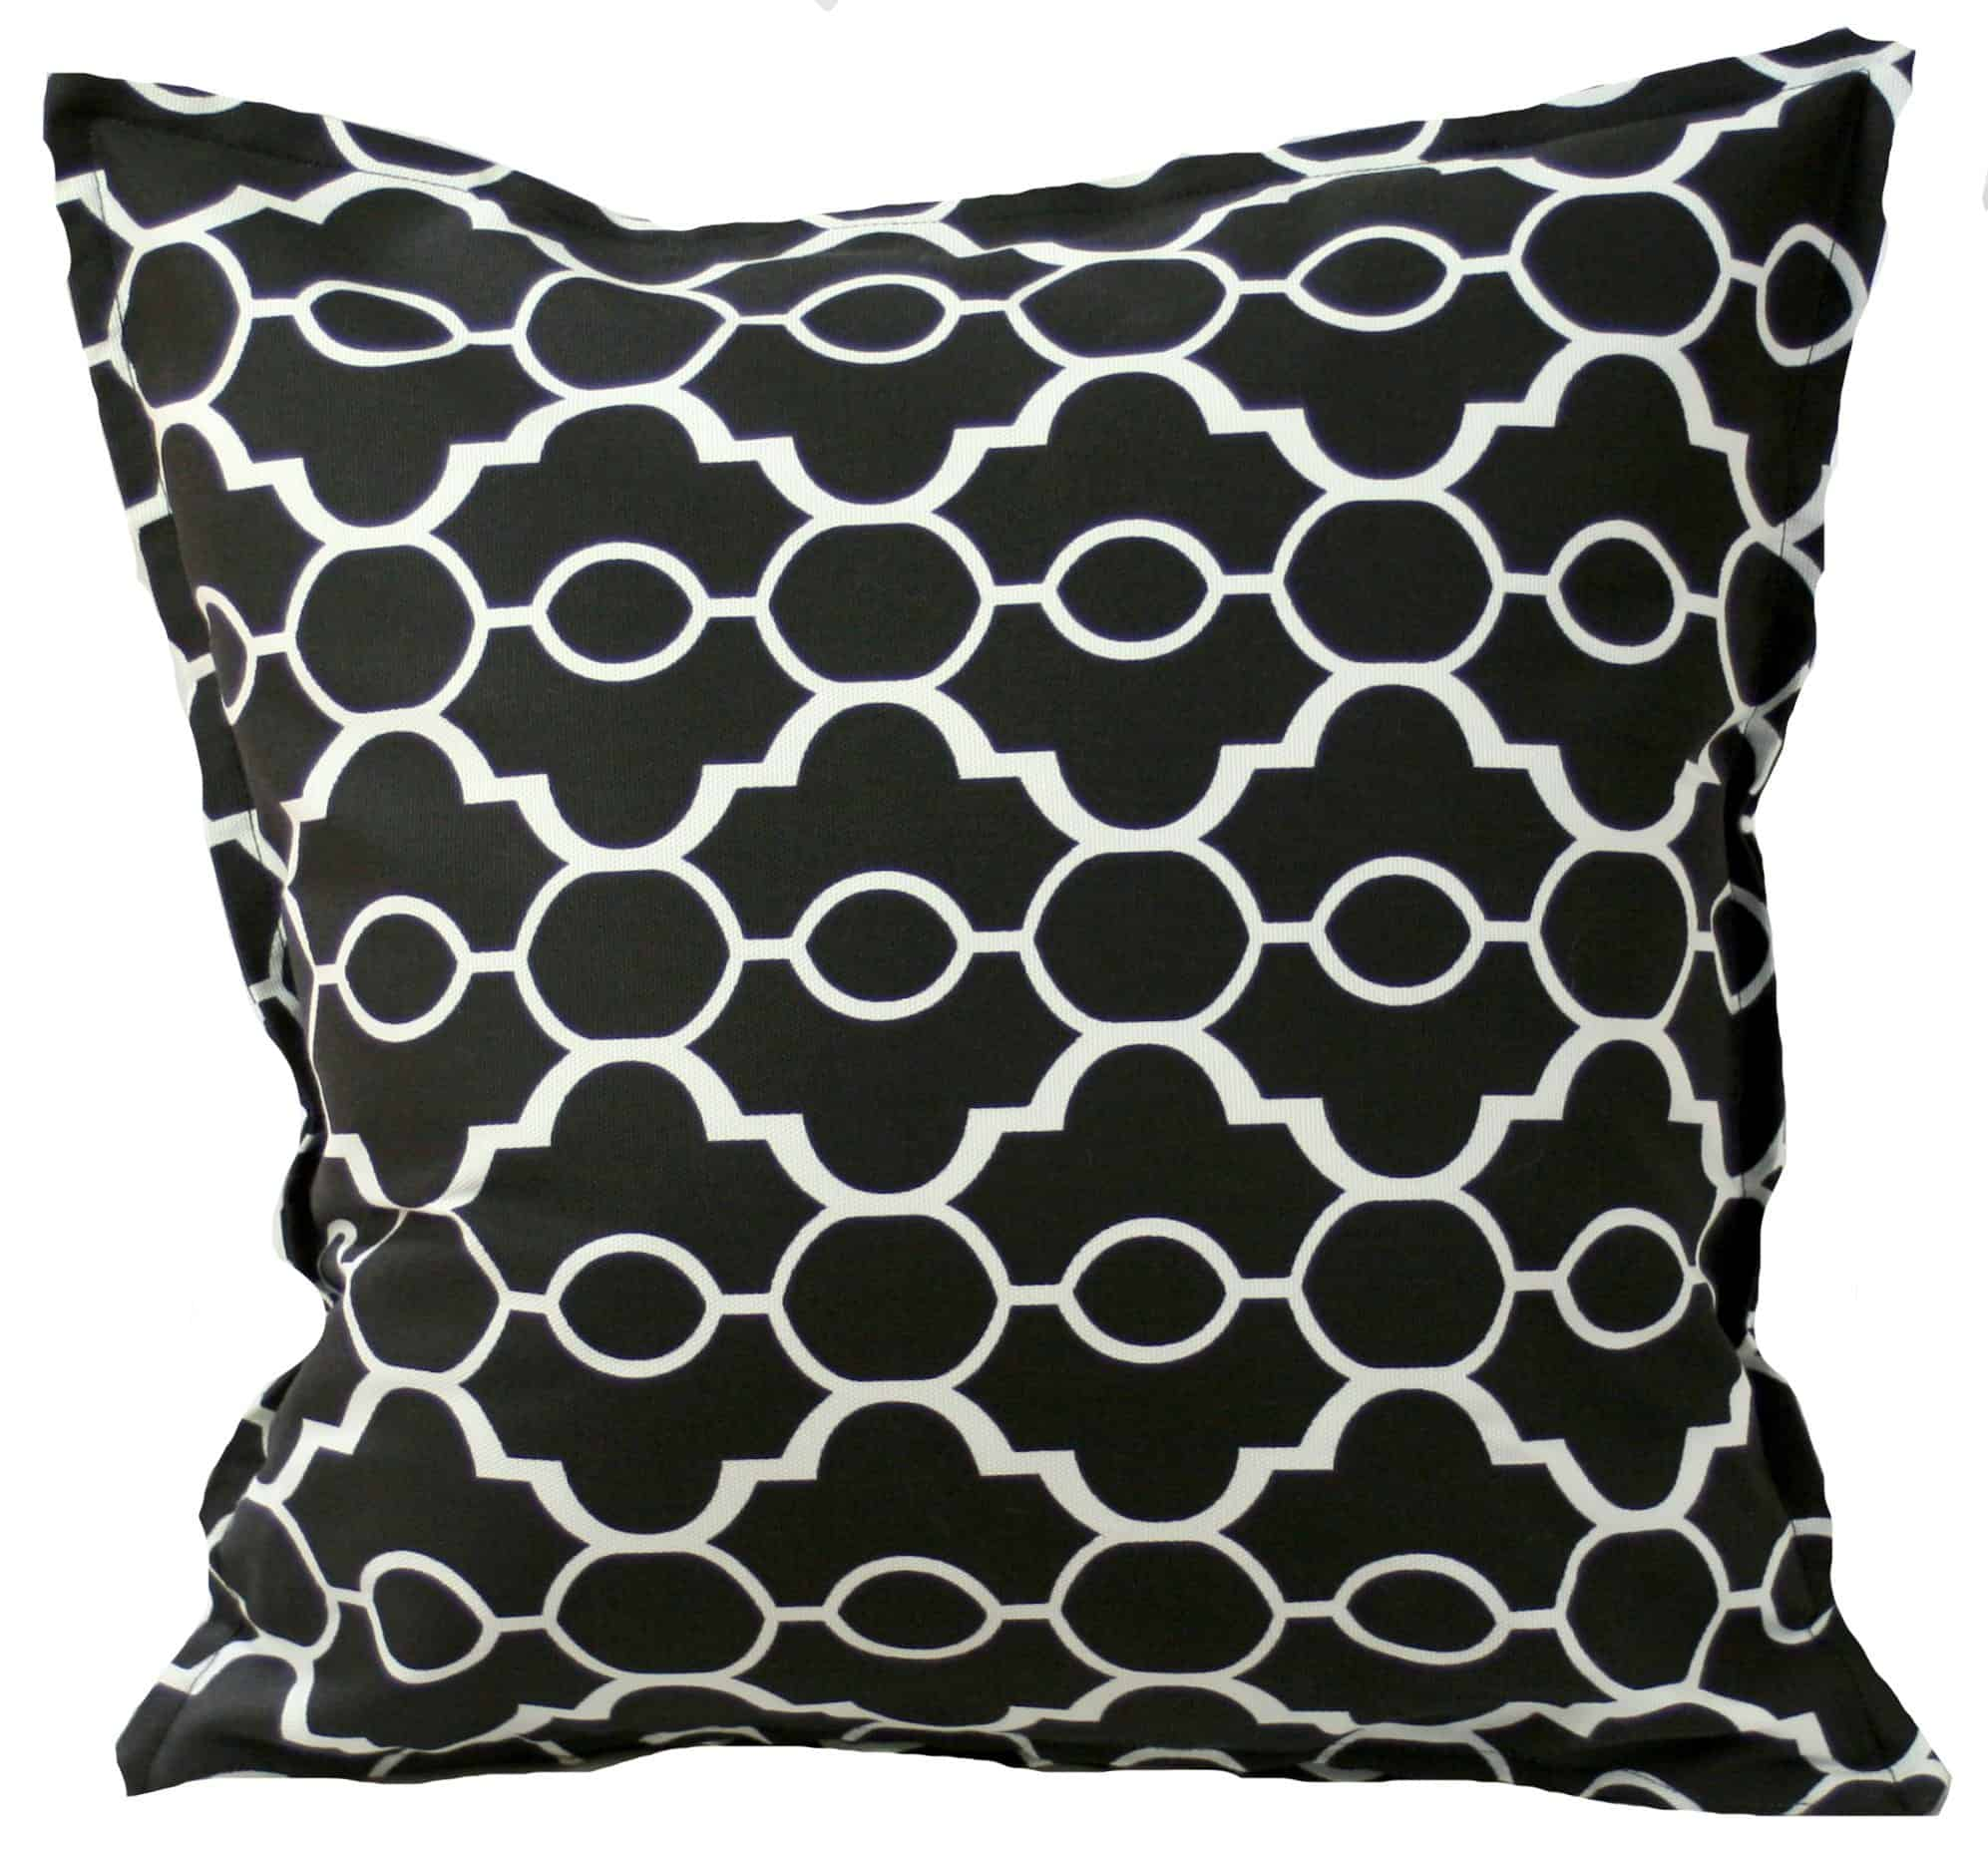 Black and White Lattice Indoor Outdoor Cushion Cover